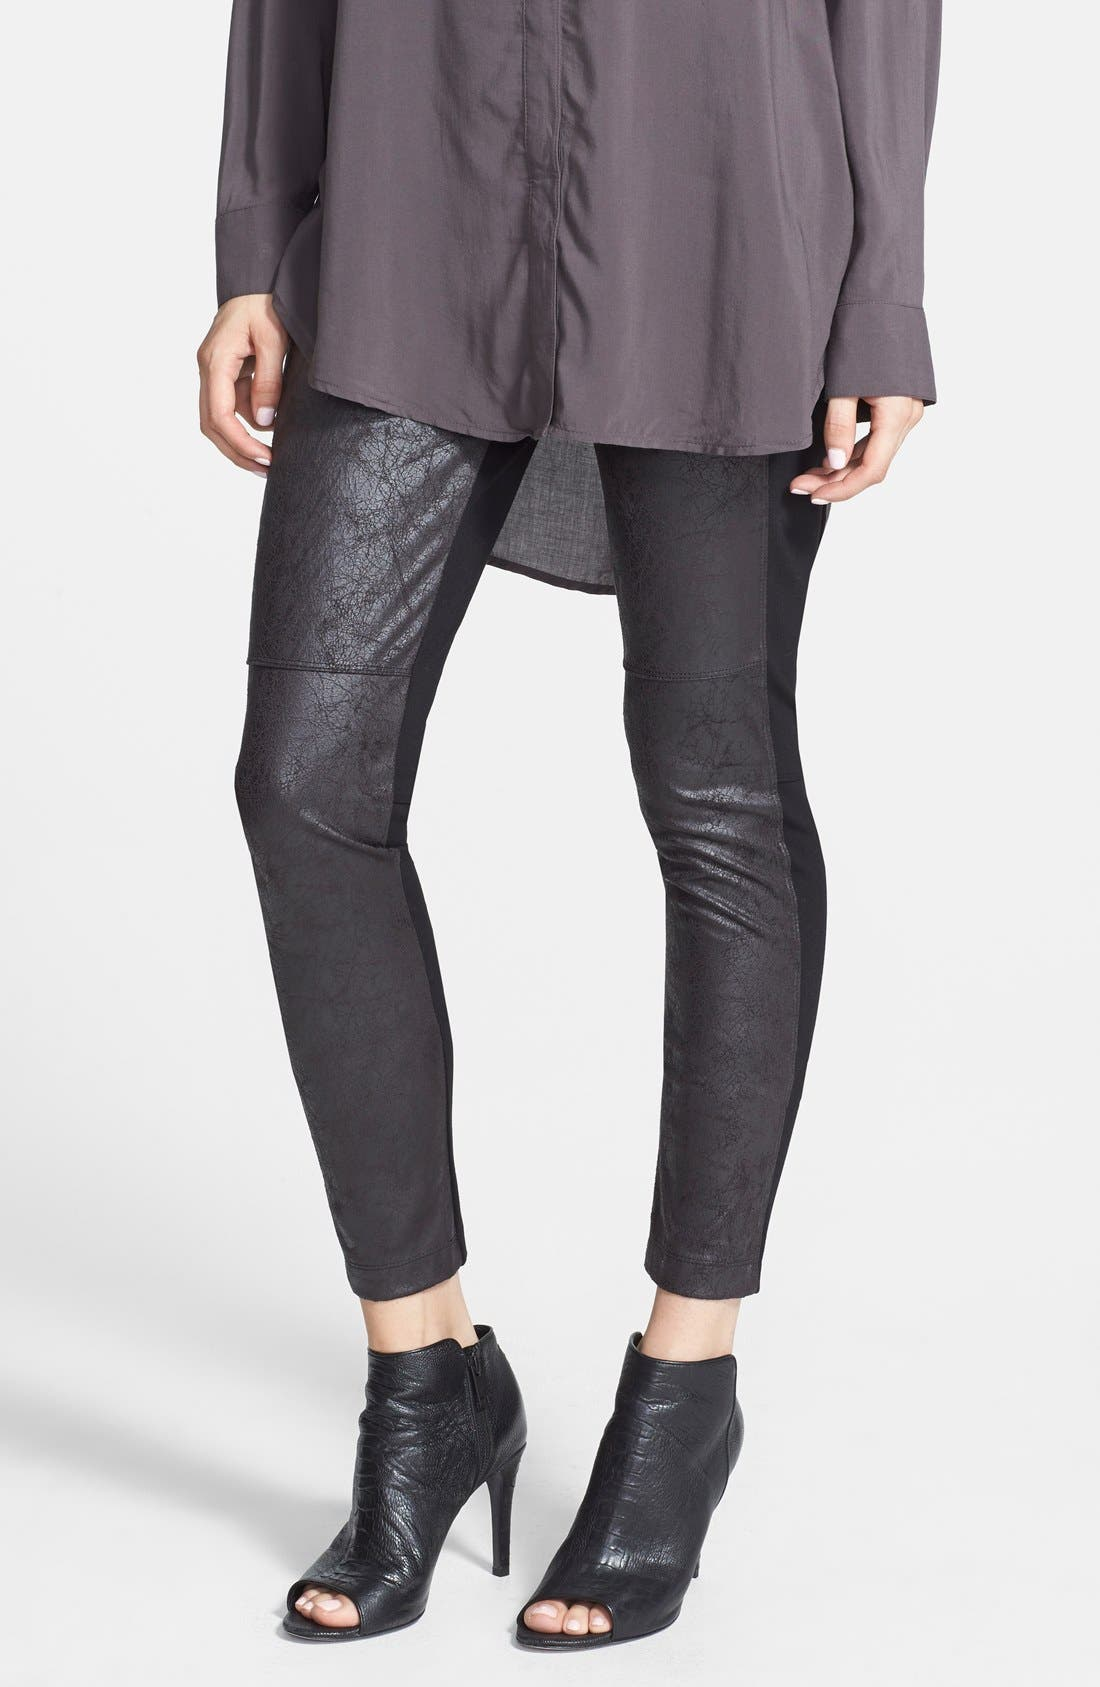 Main Image - Lyssé 'Rue' Faux Leather & Ponte Knit Leggings